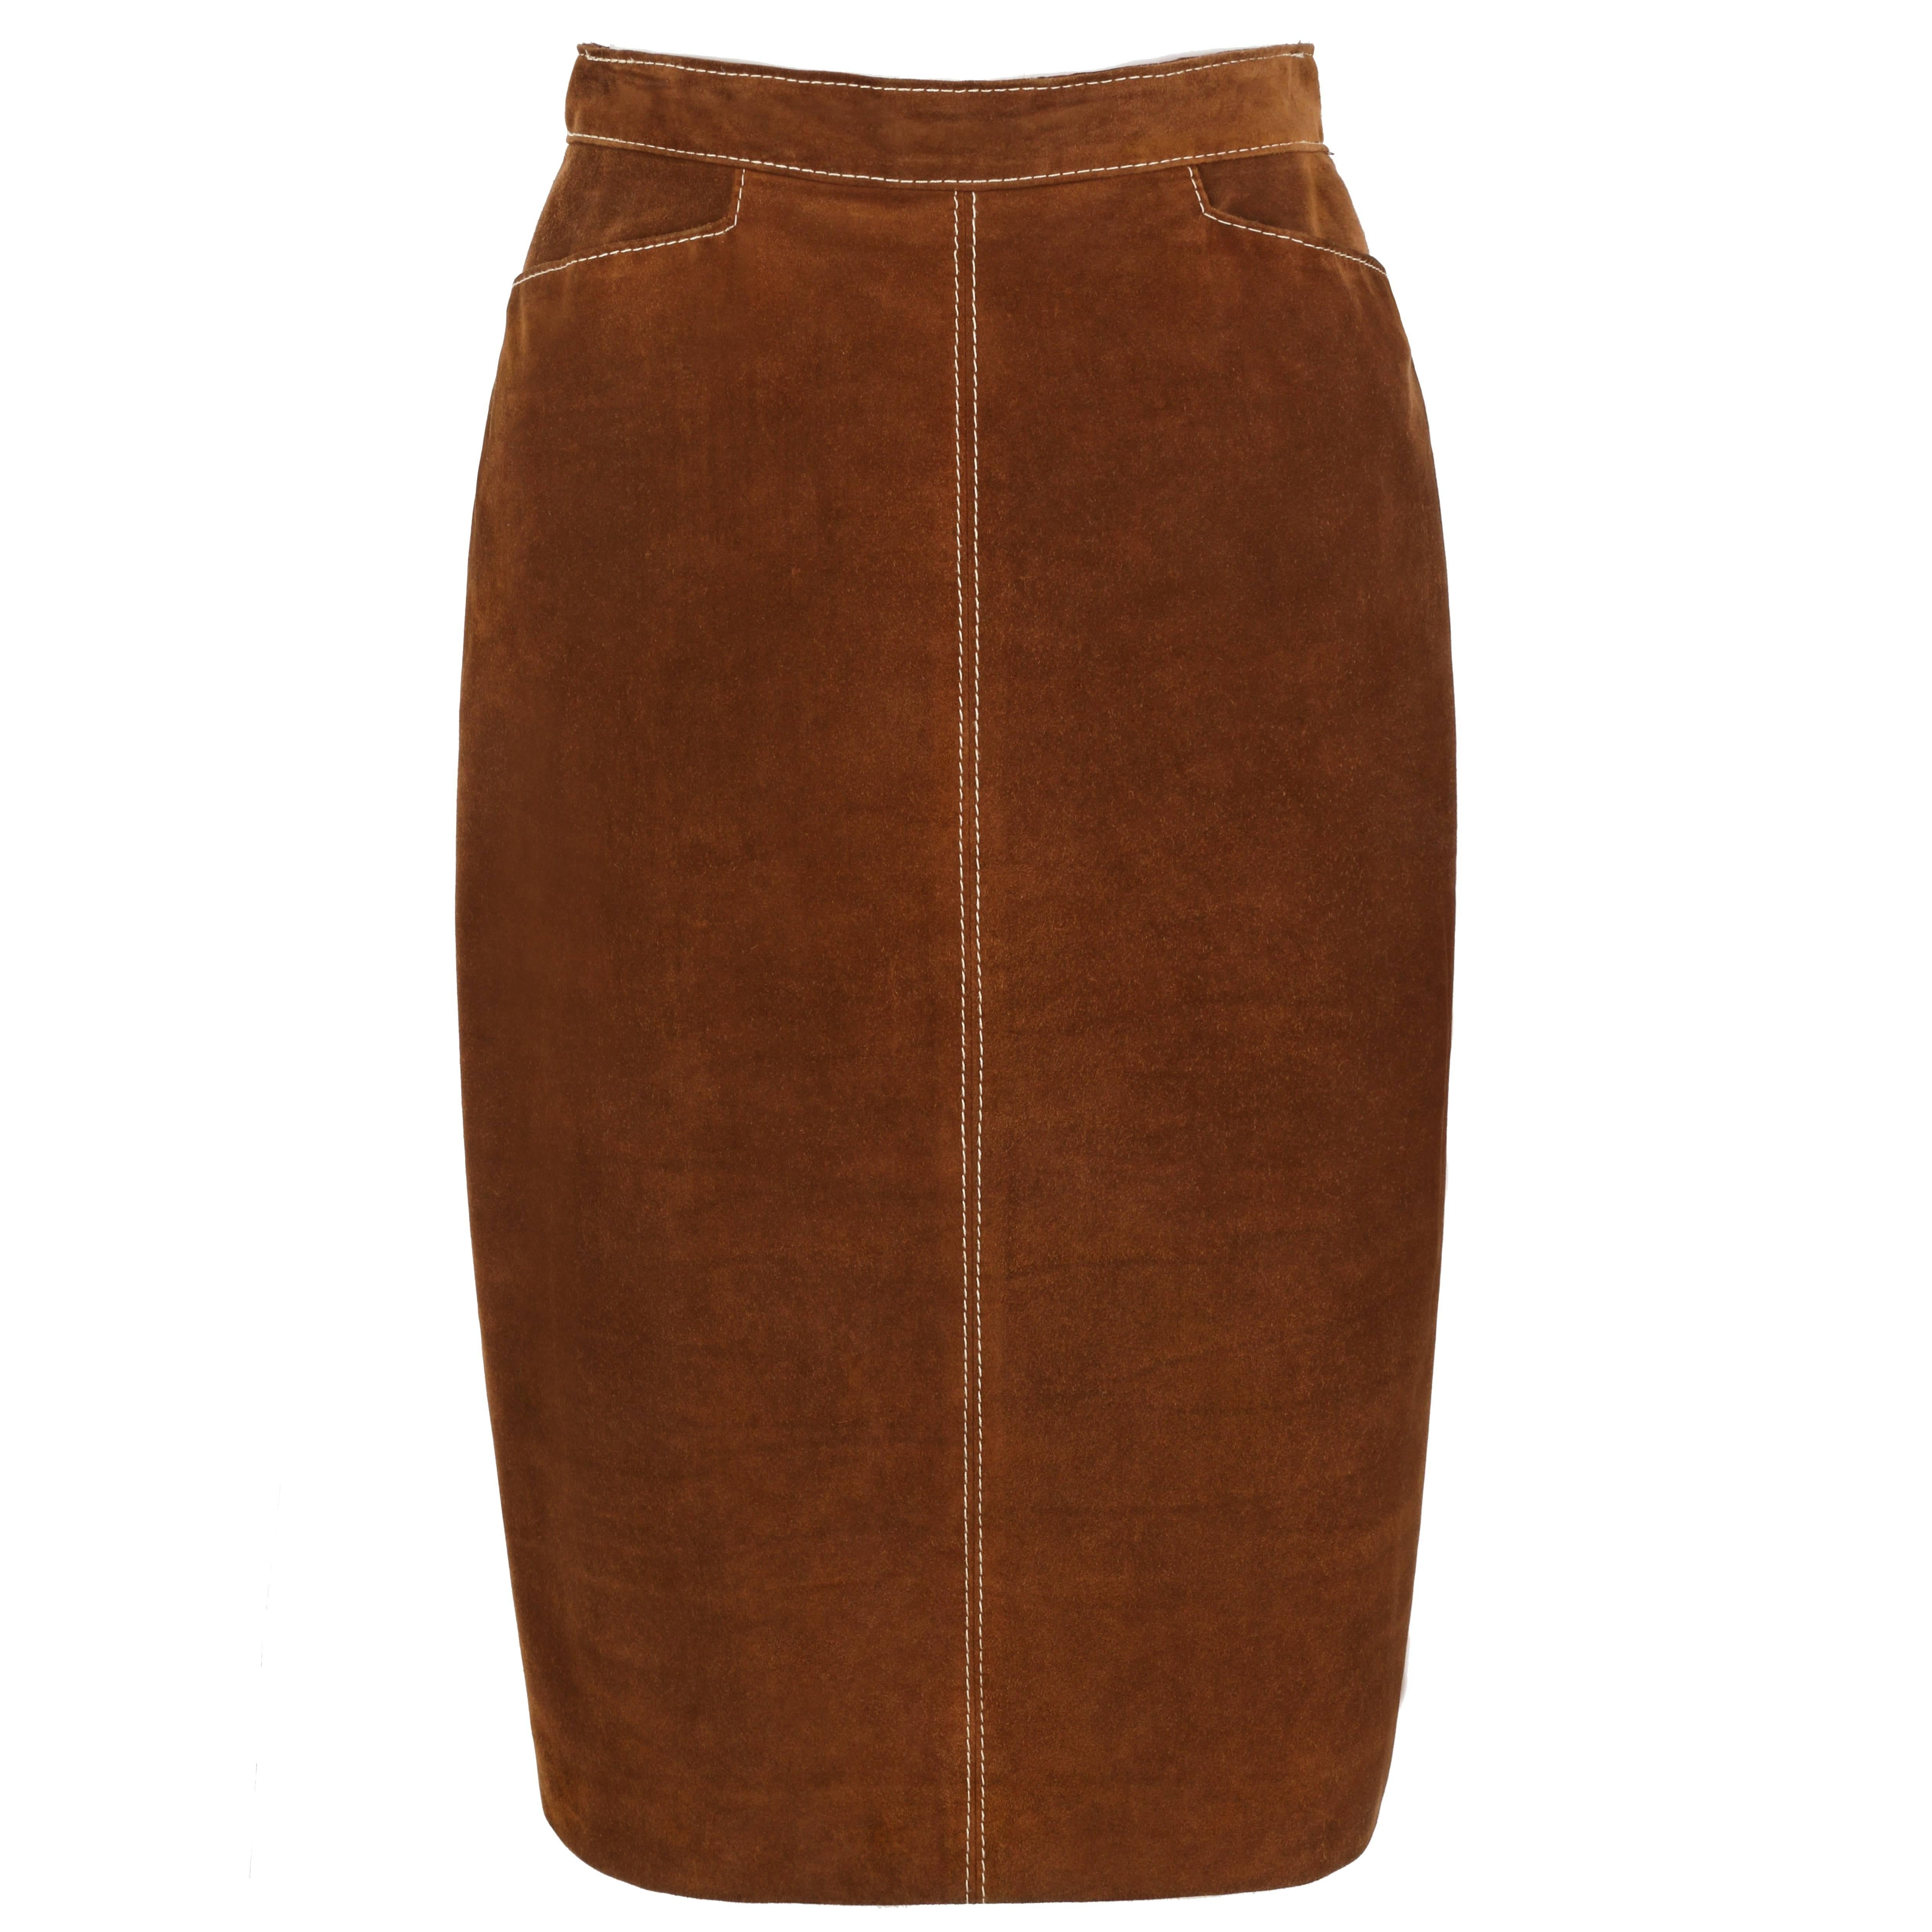 387784718 HERMES c.1970's Classic Brown Calfskin Suede Leather Pencil Skirt For Sale  at 1stdibs